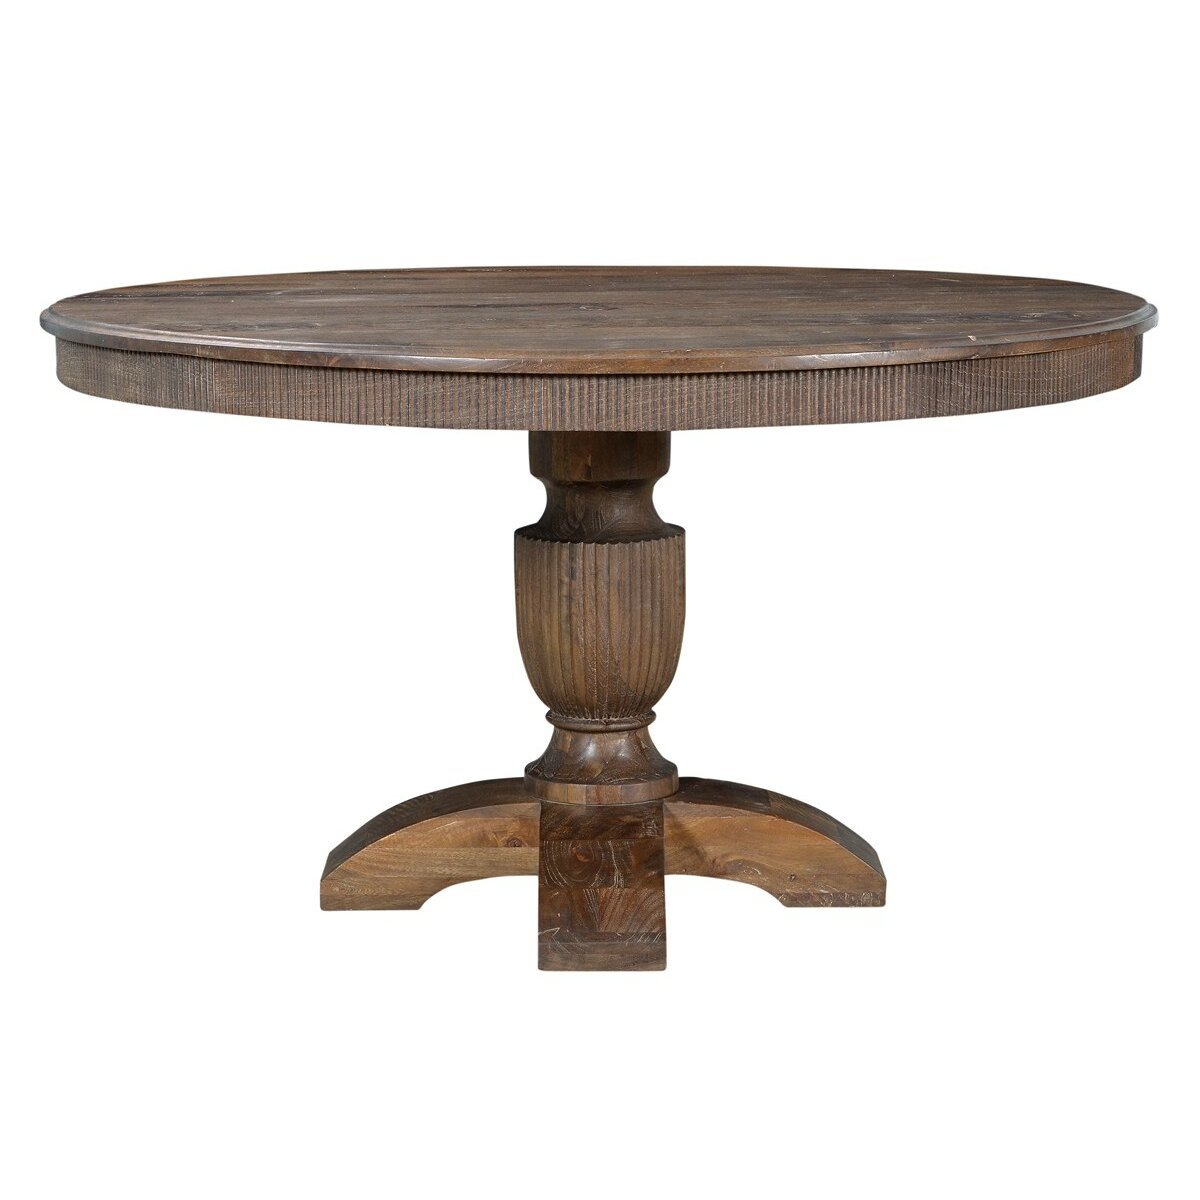 Style n living brasilia dining table reviews wayfair for Styling a dining table